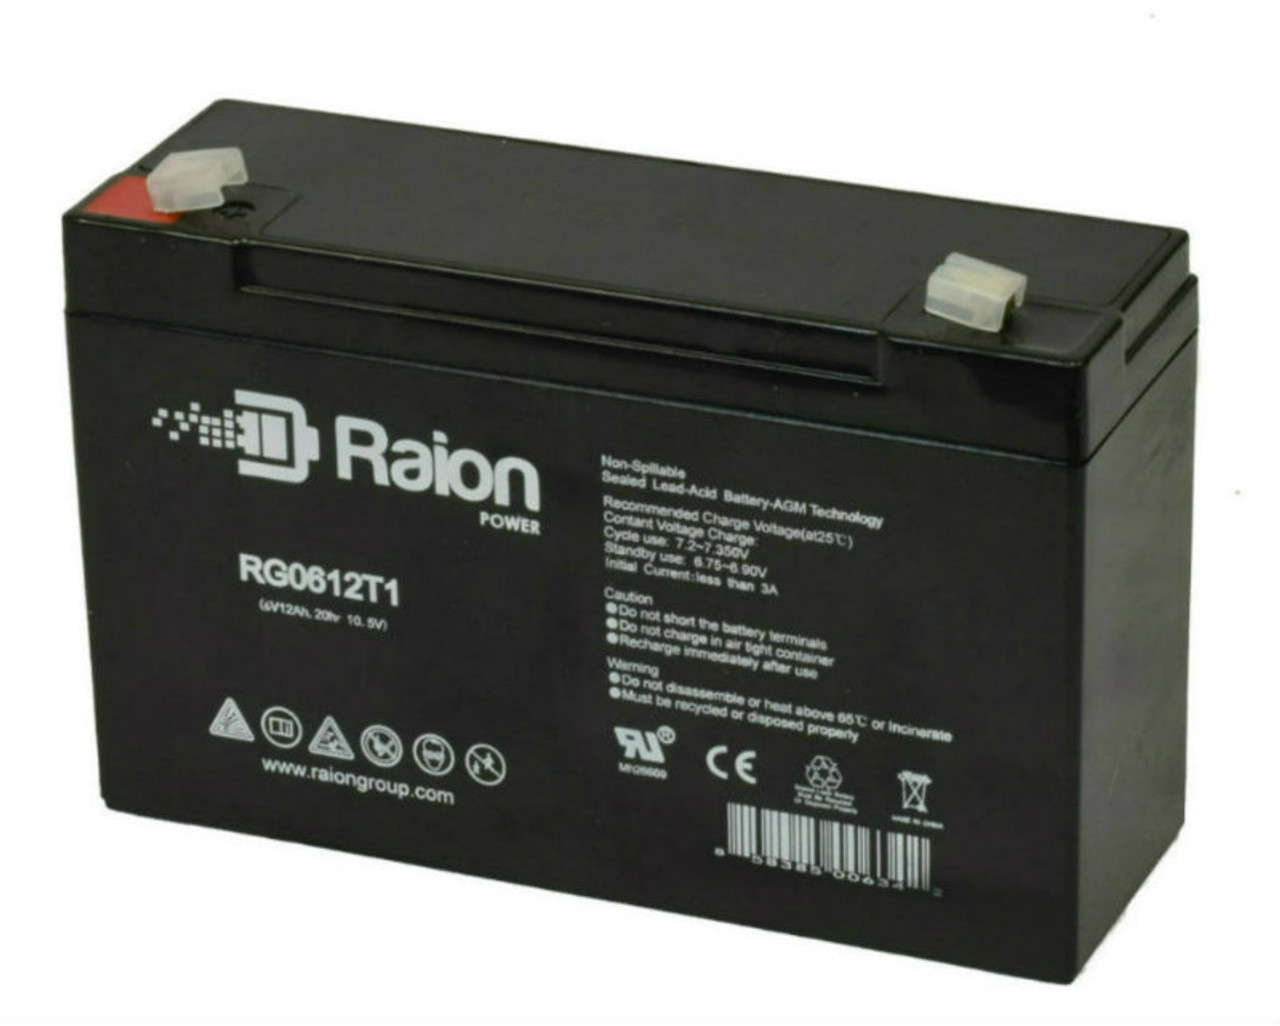 Raion Power RG06120T1 Replacement Battery Pack for Holophane M23 emergency light